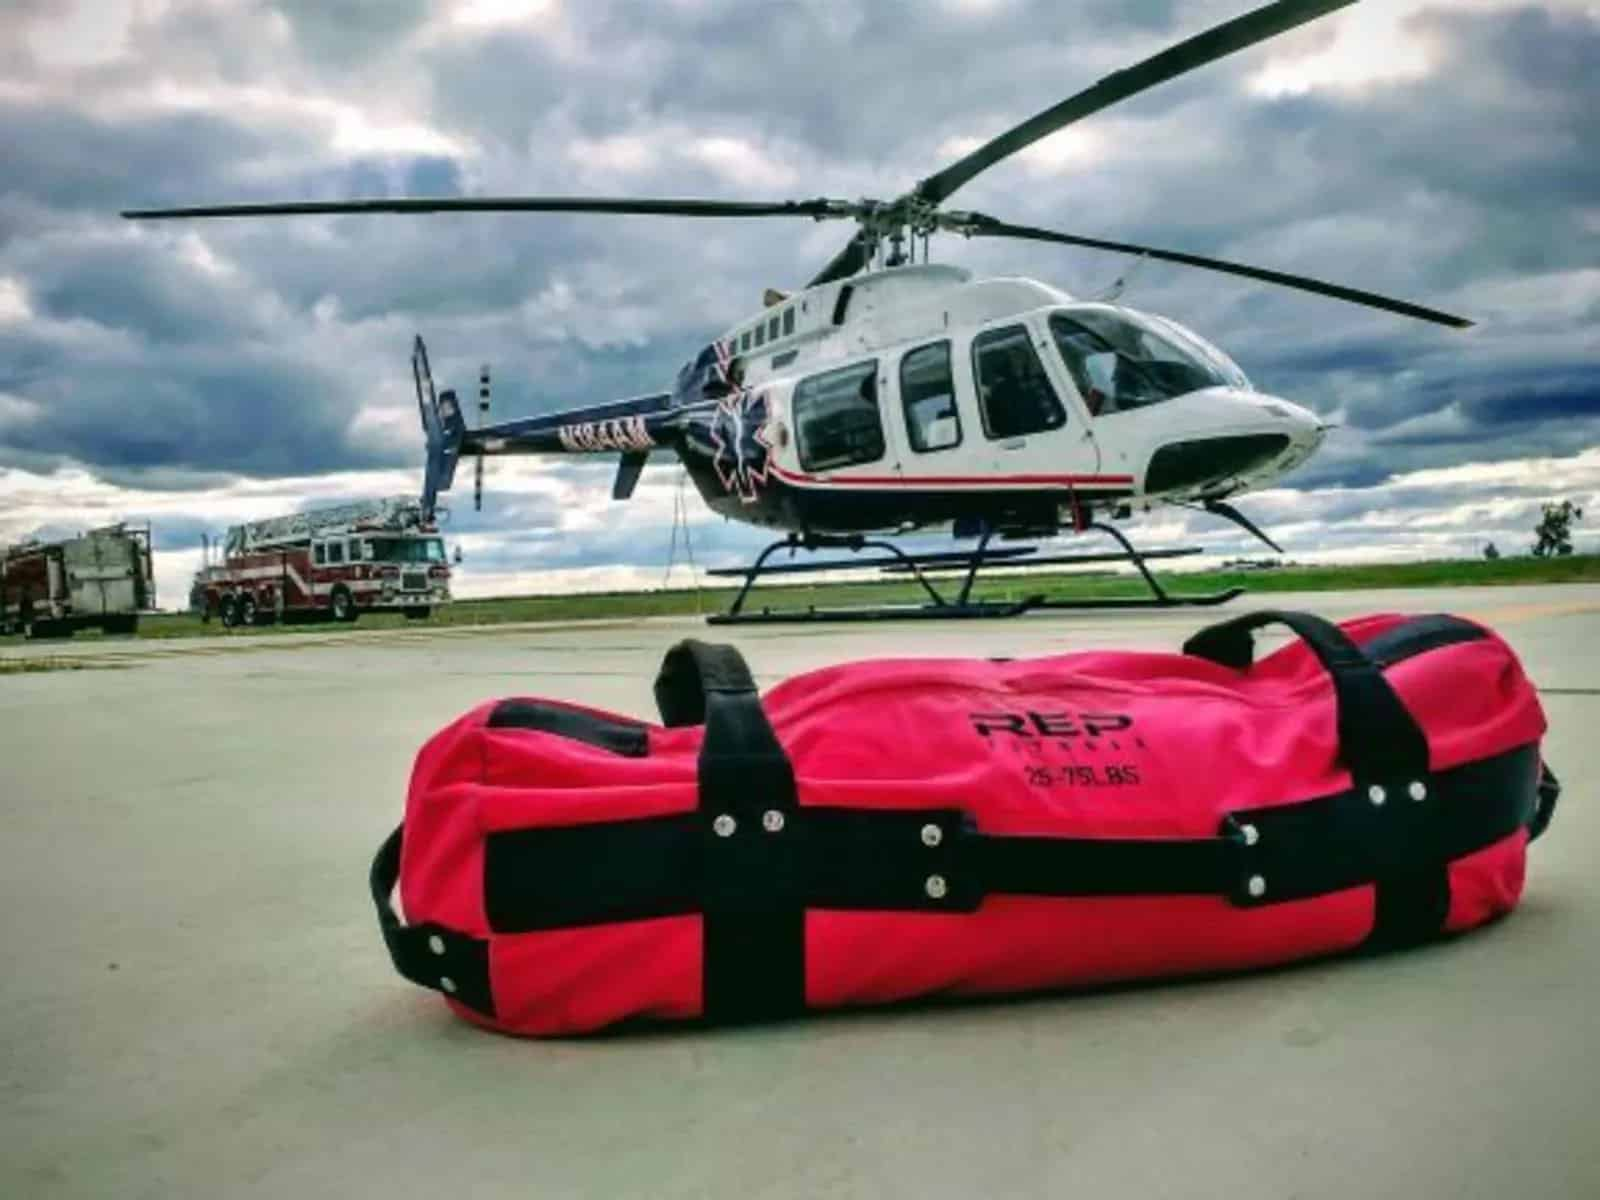 Rep Fitness V2 Sandbags pink with helicopter